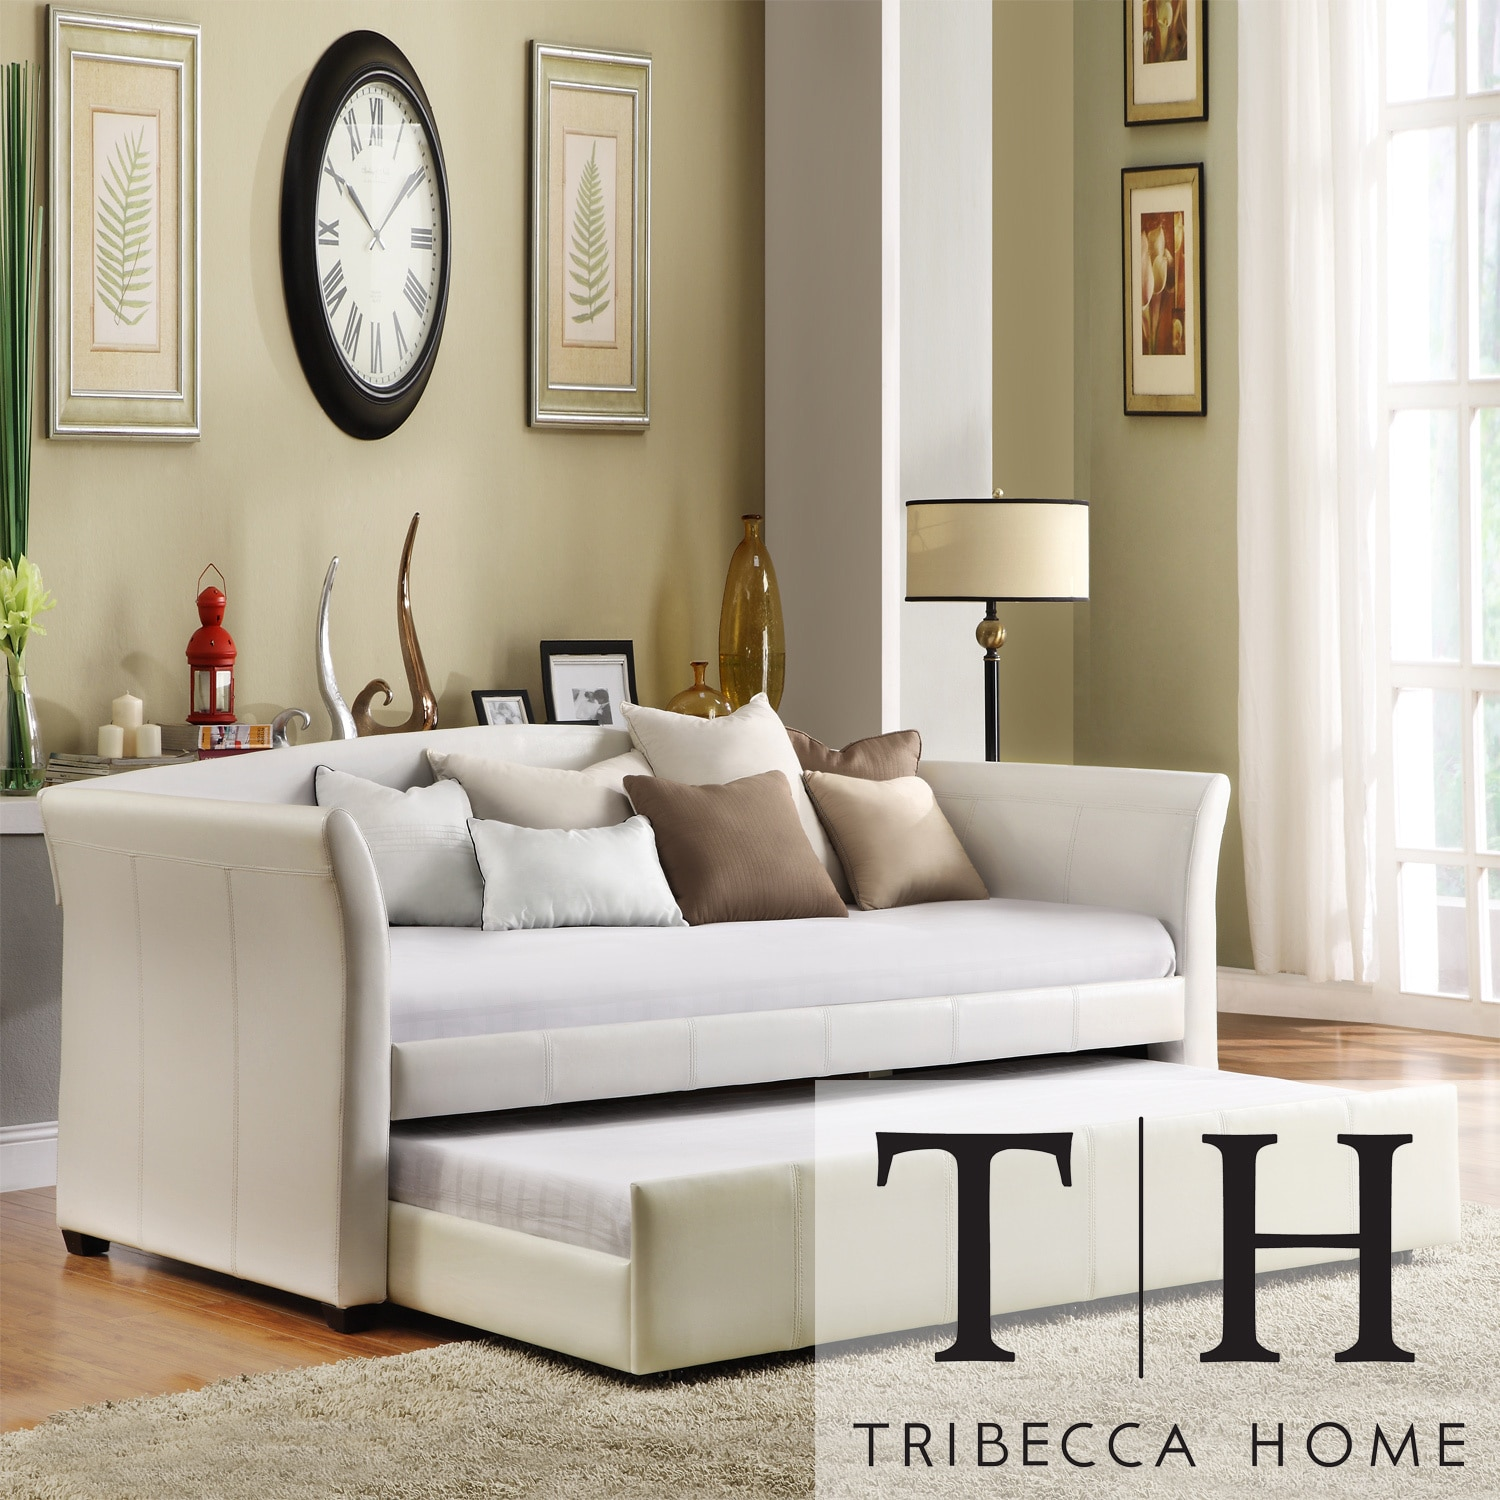 TRIBECCA HOME Deco White Faux Leather Modern Daybed with Trundle at Sears.com